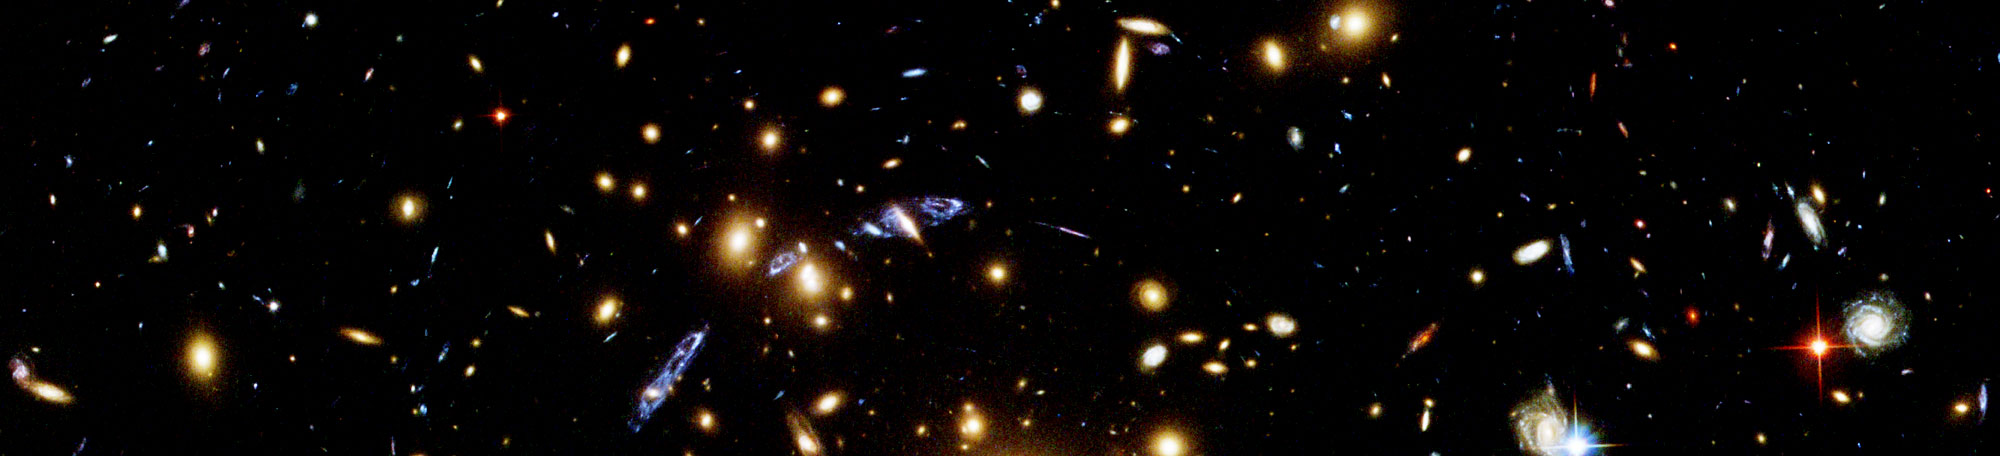 An image from the Hubble telescope